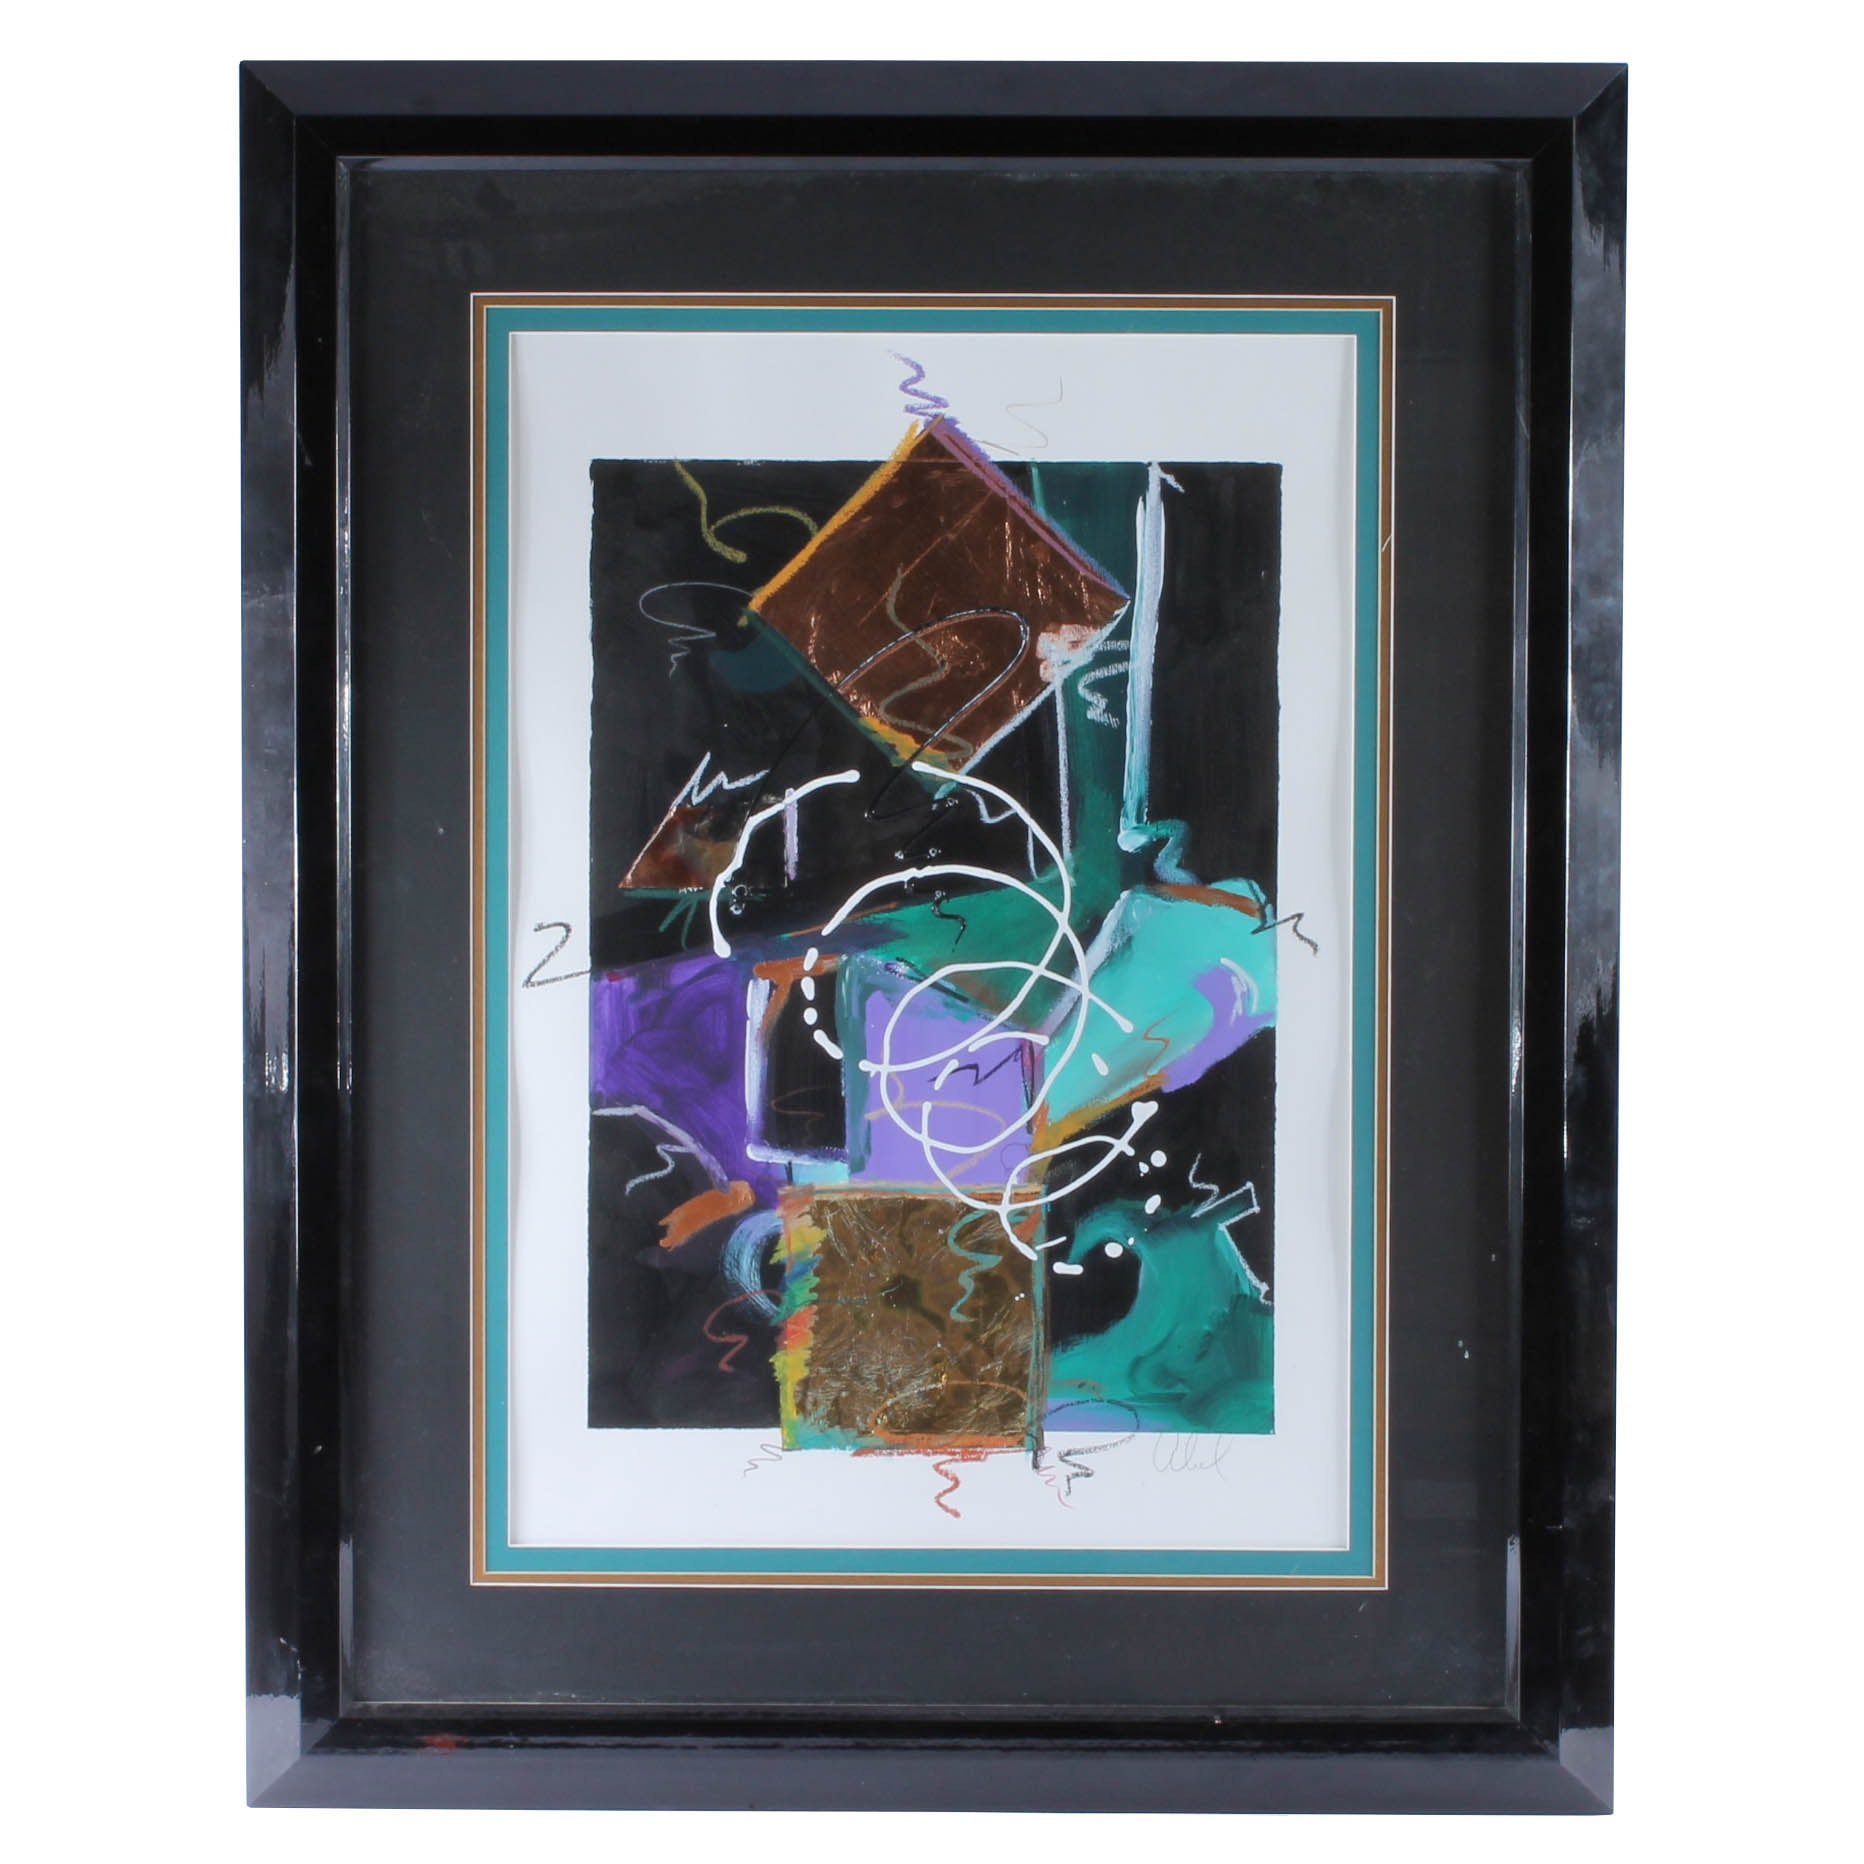 Michelson Abel Signed Original Mixed Media Painting